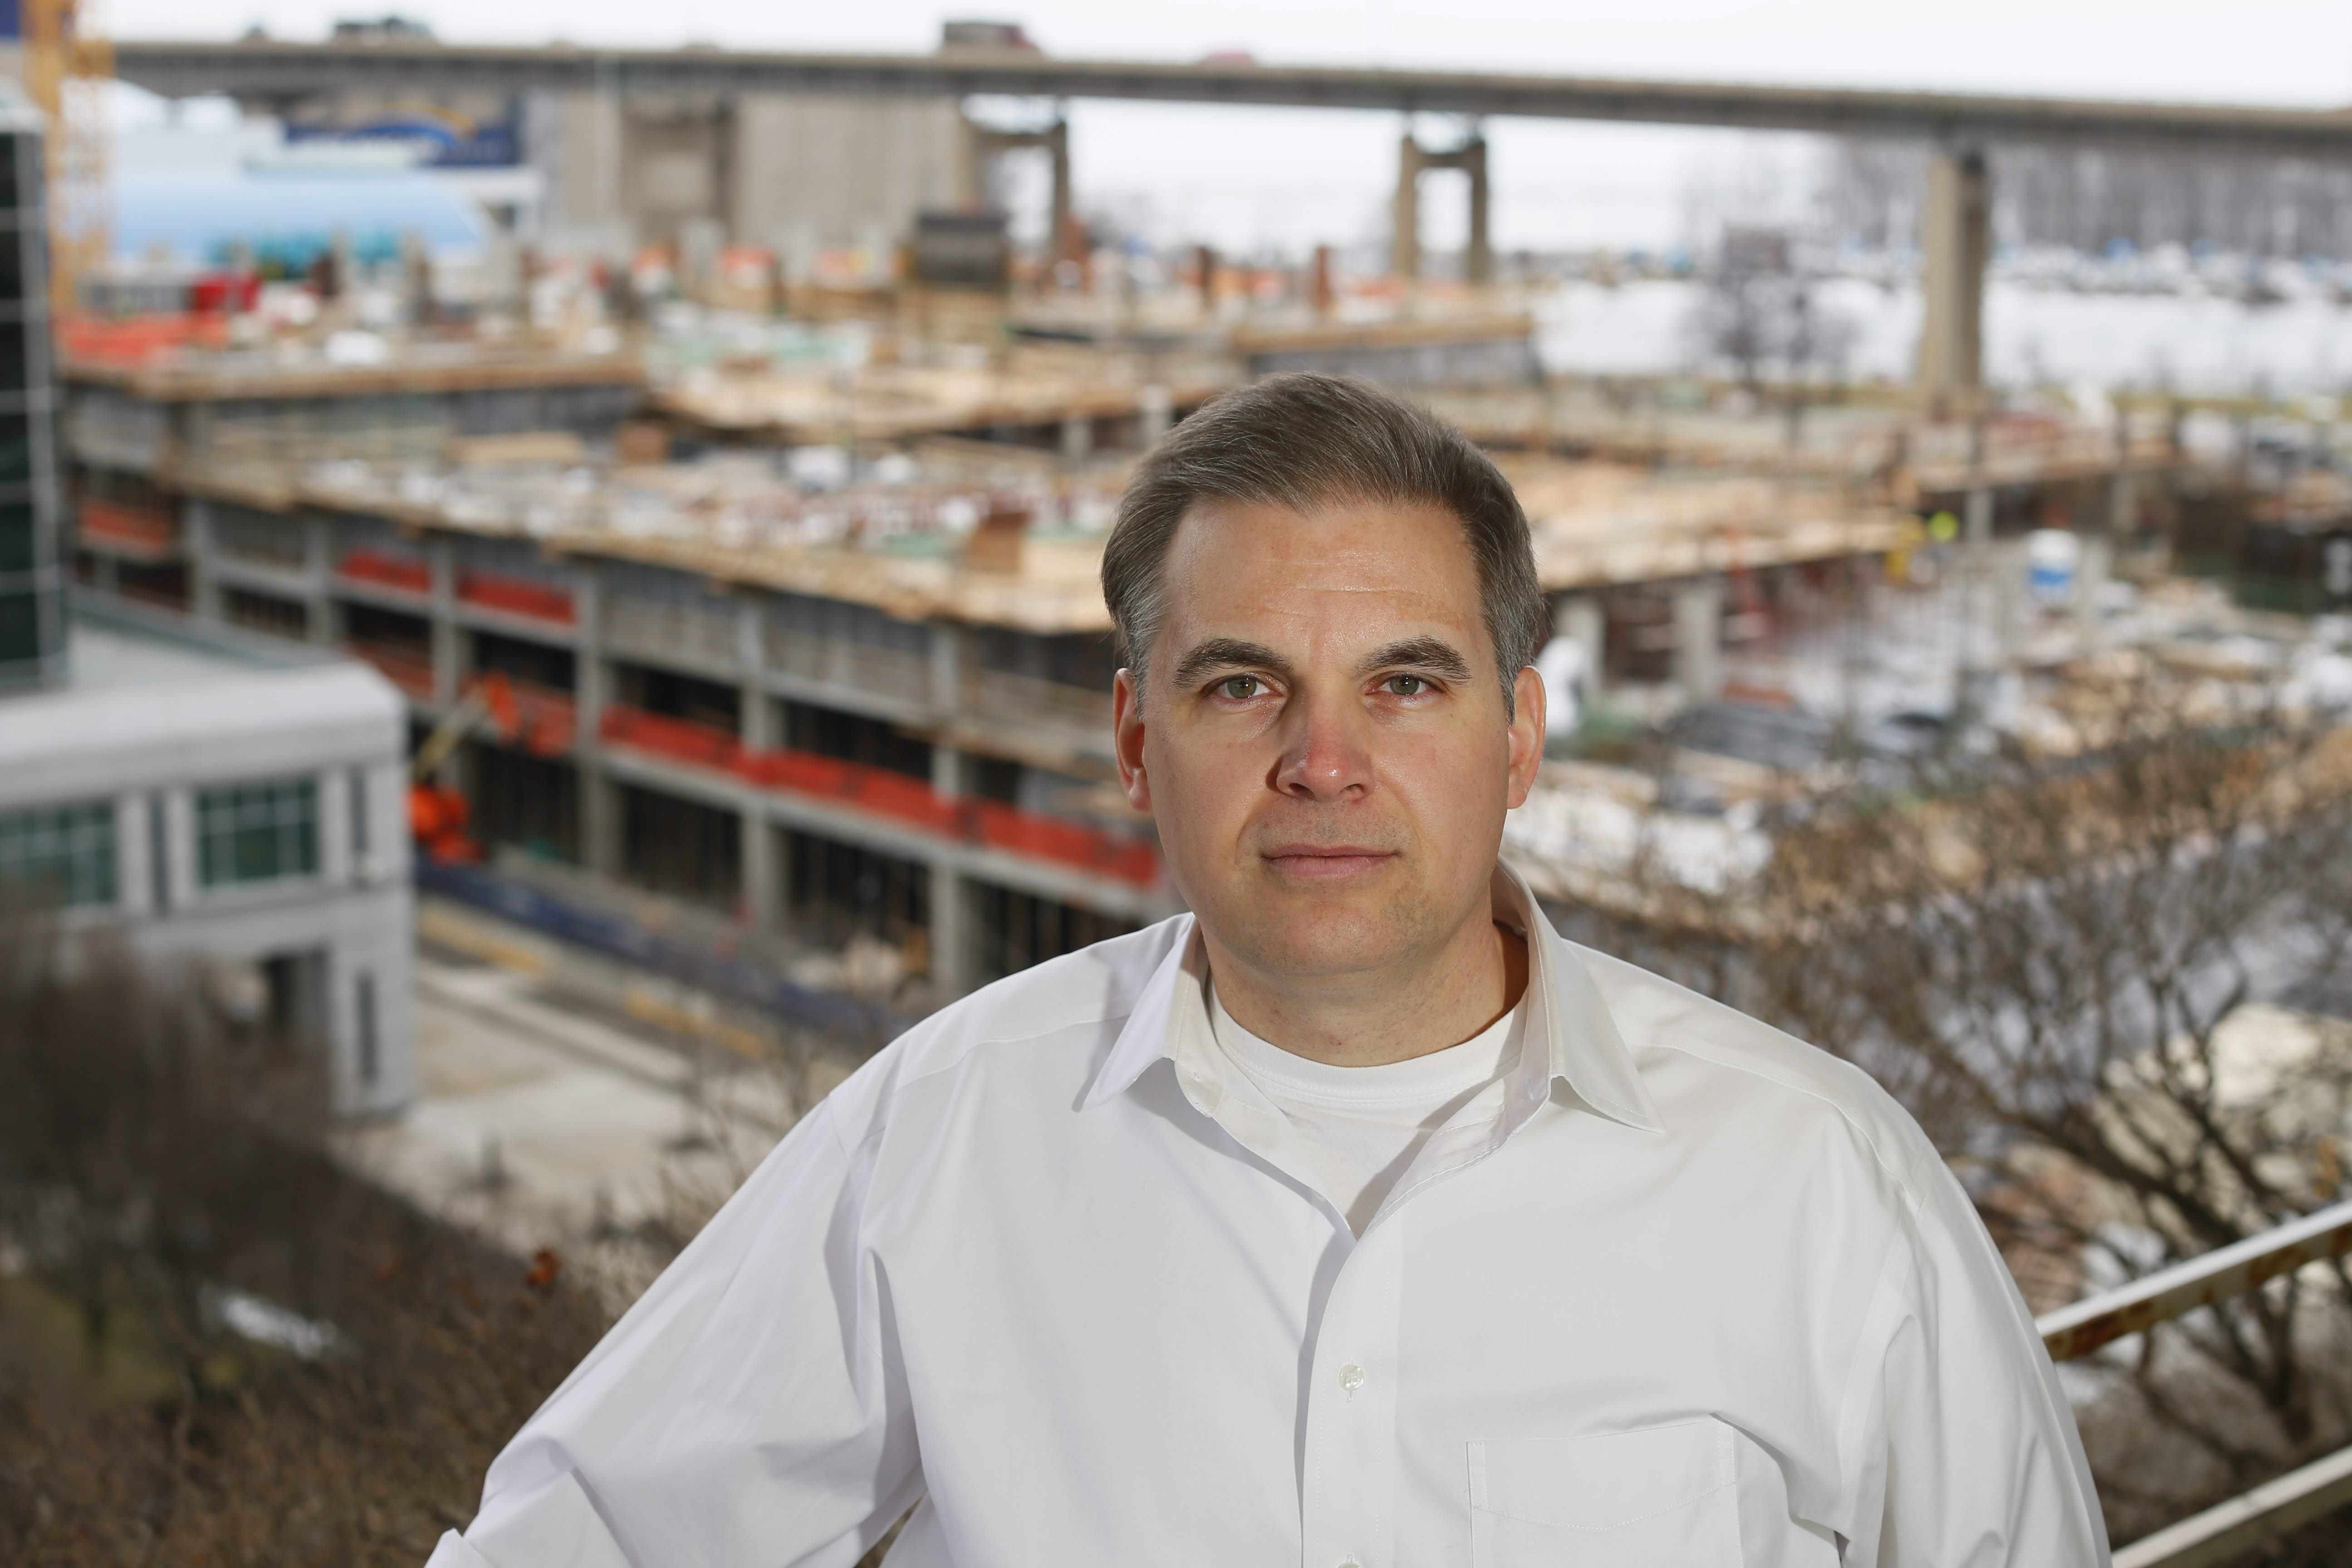 Andrew Pulkarabek sees the Buffalo region's potential in developing a startup business ecosystem.